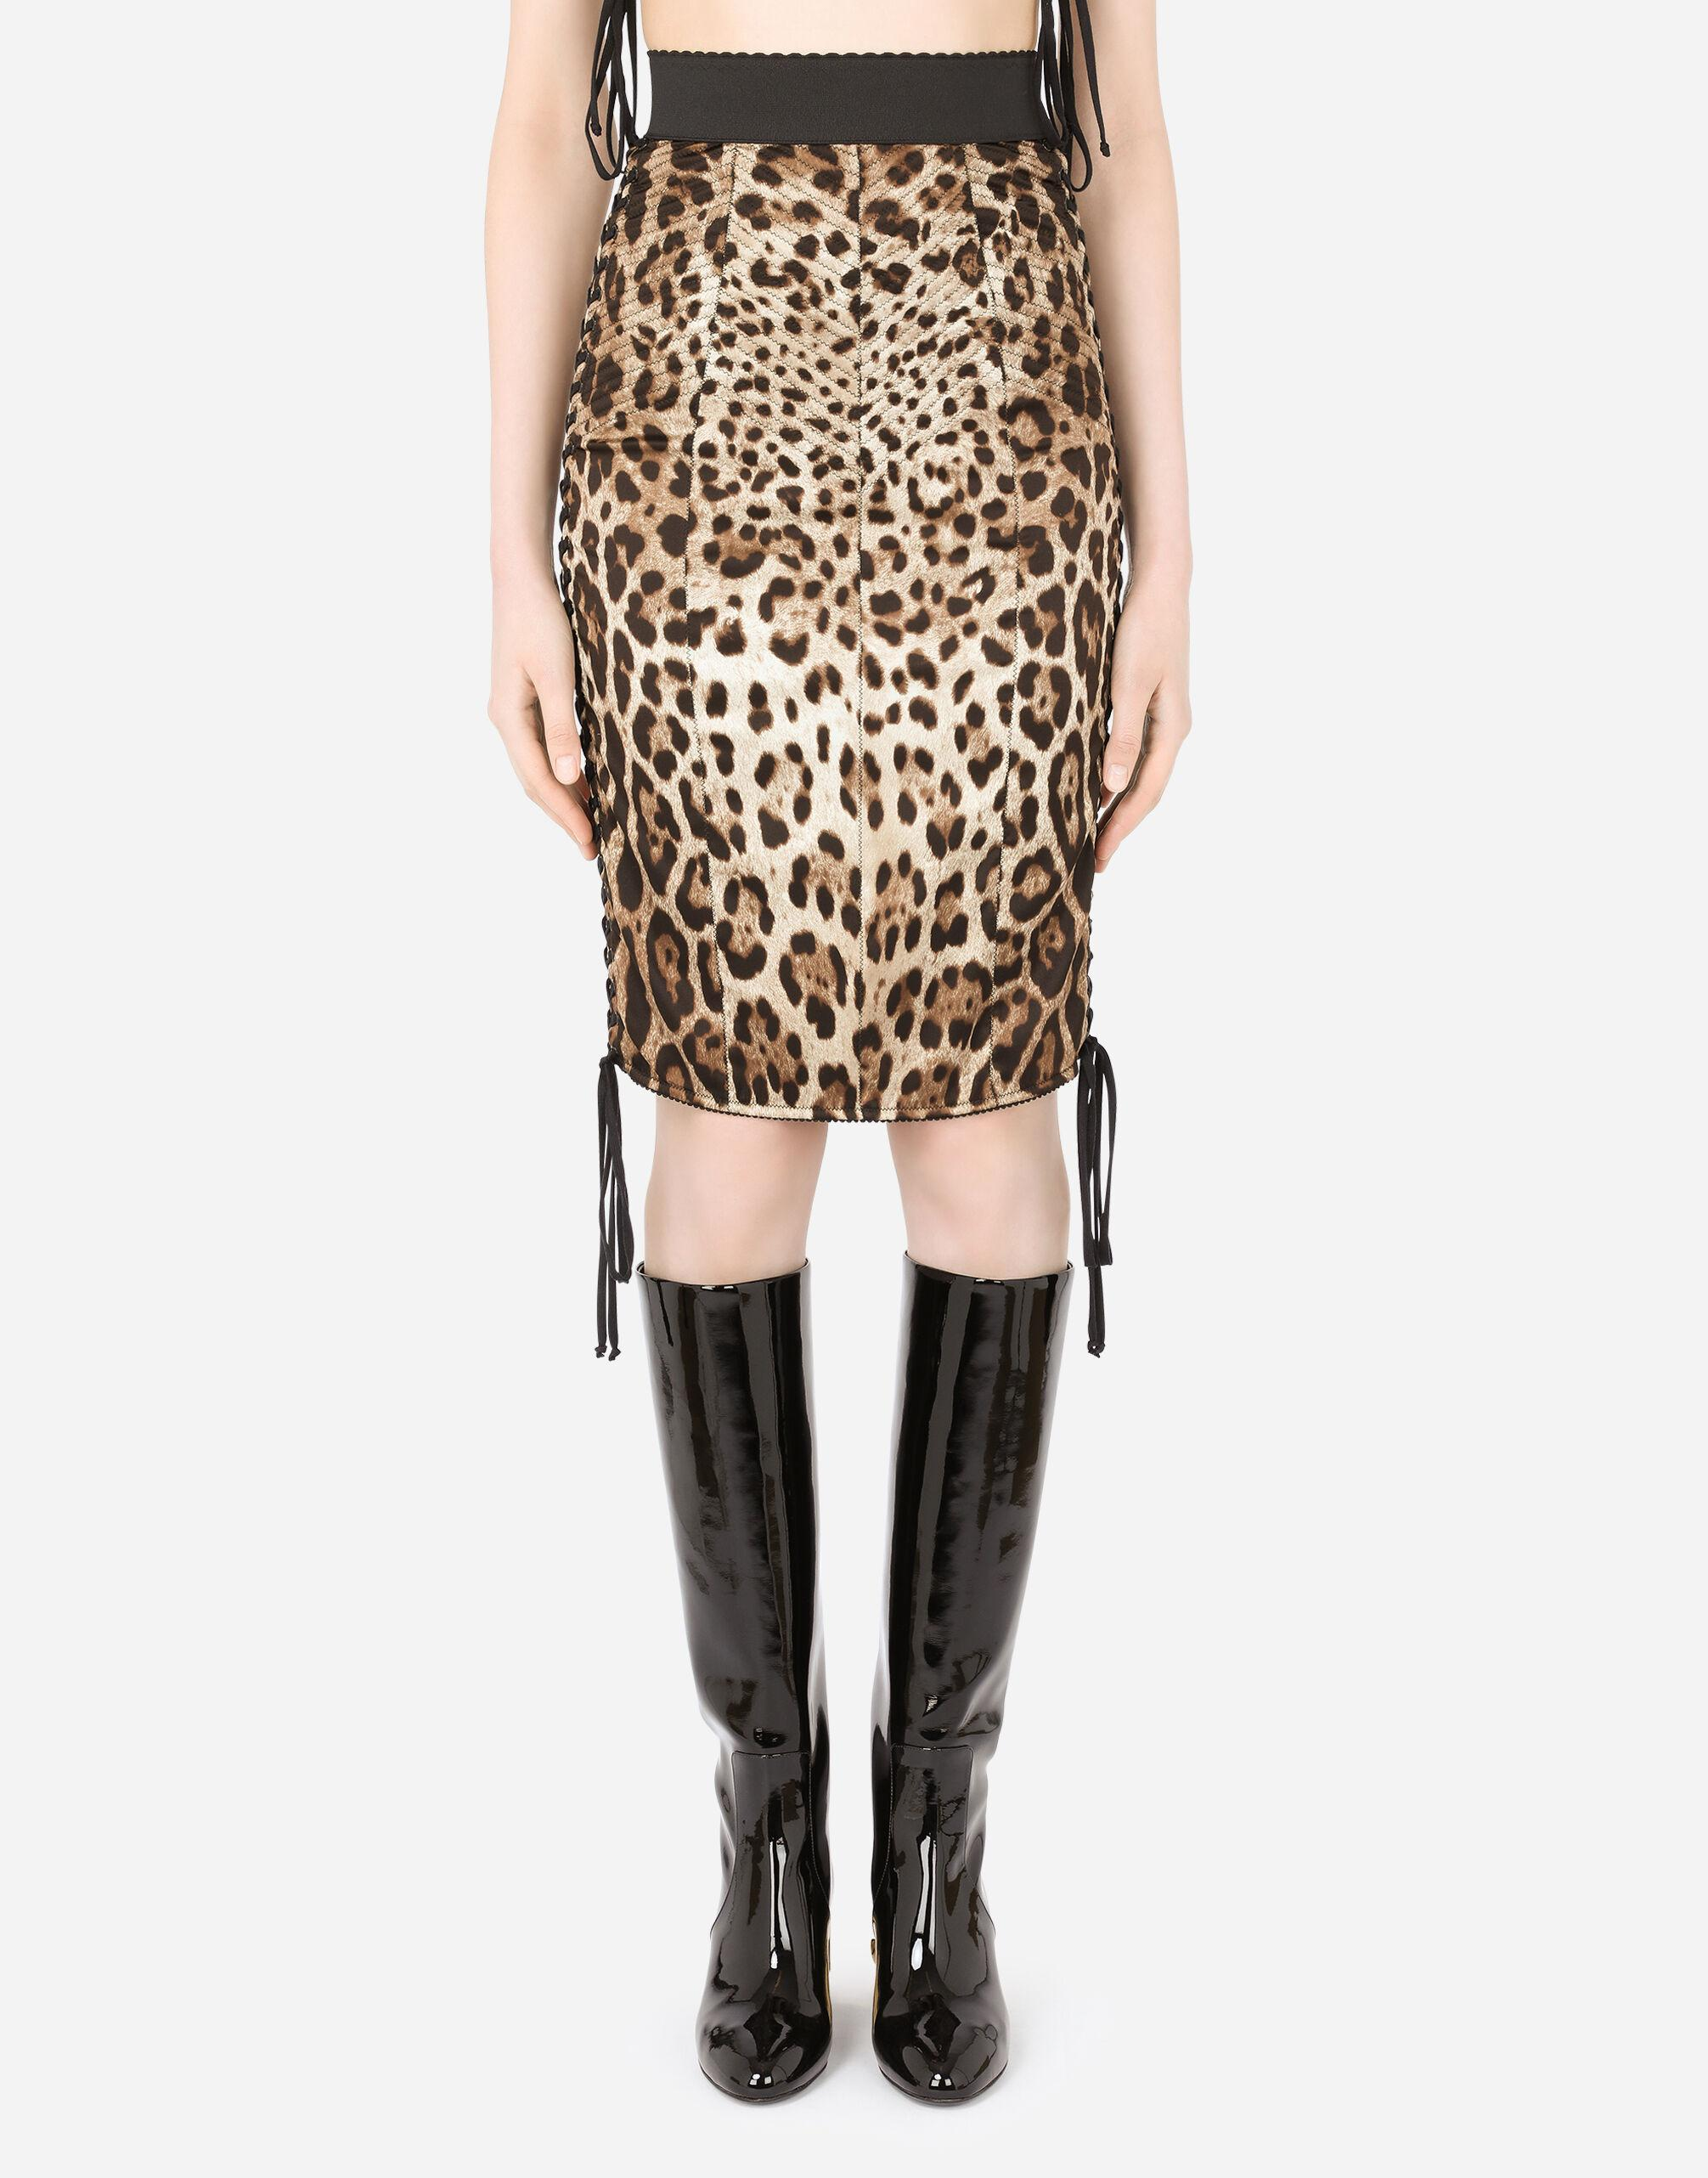 Leopard-print satin midi skirt with laces and eyelets